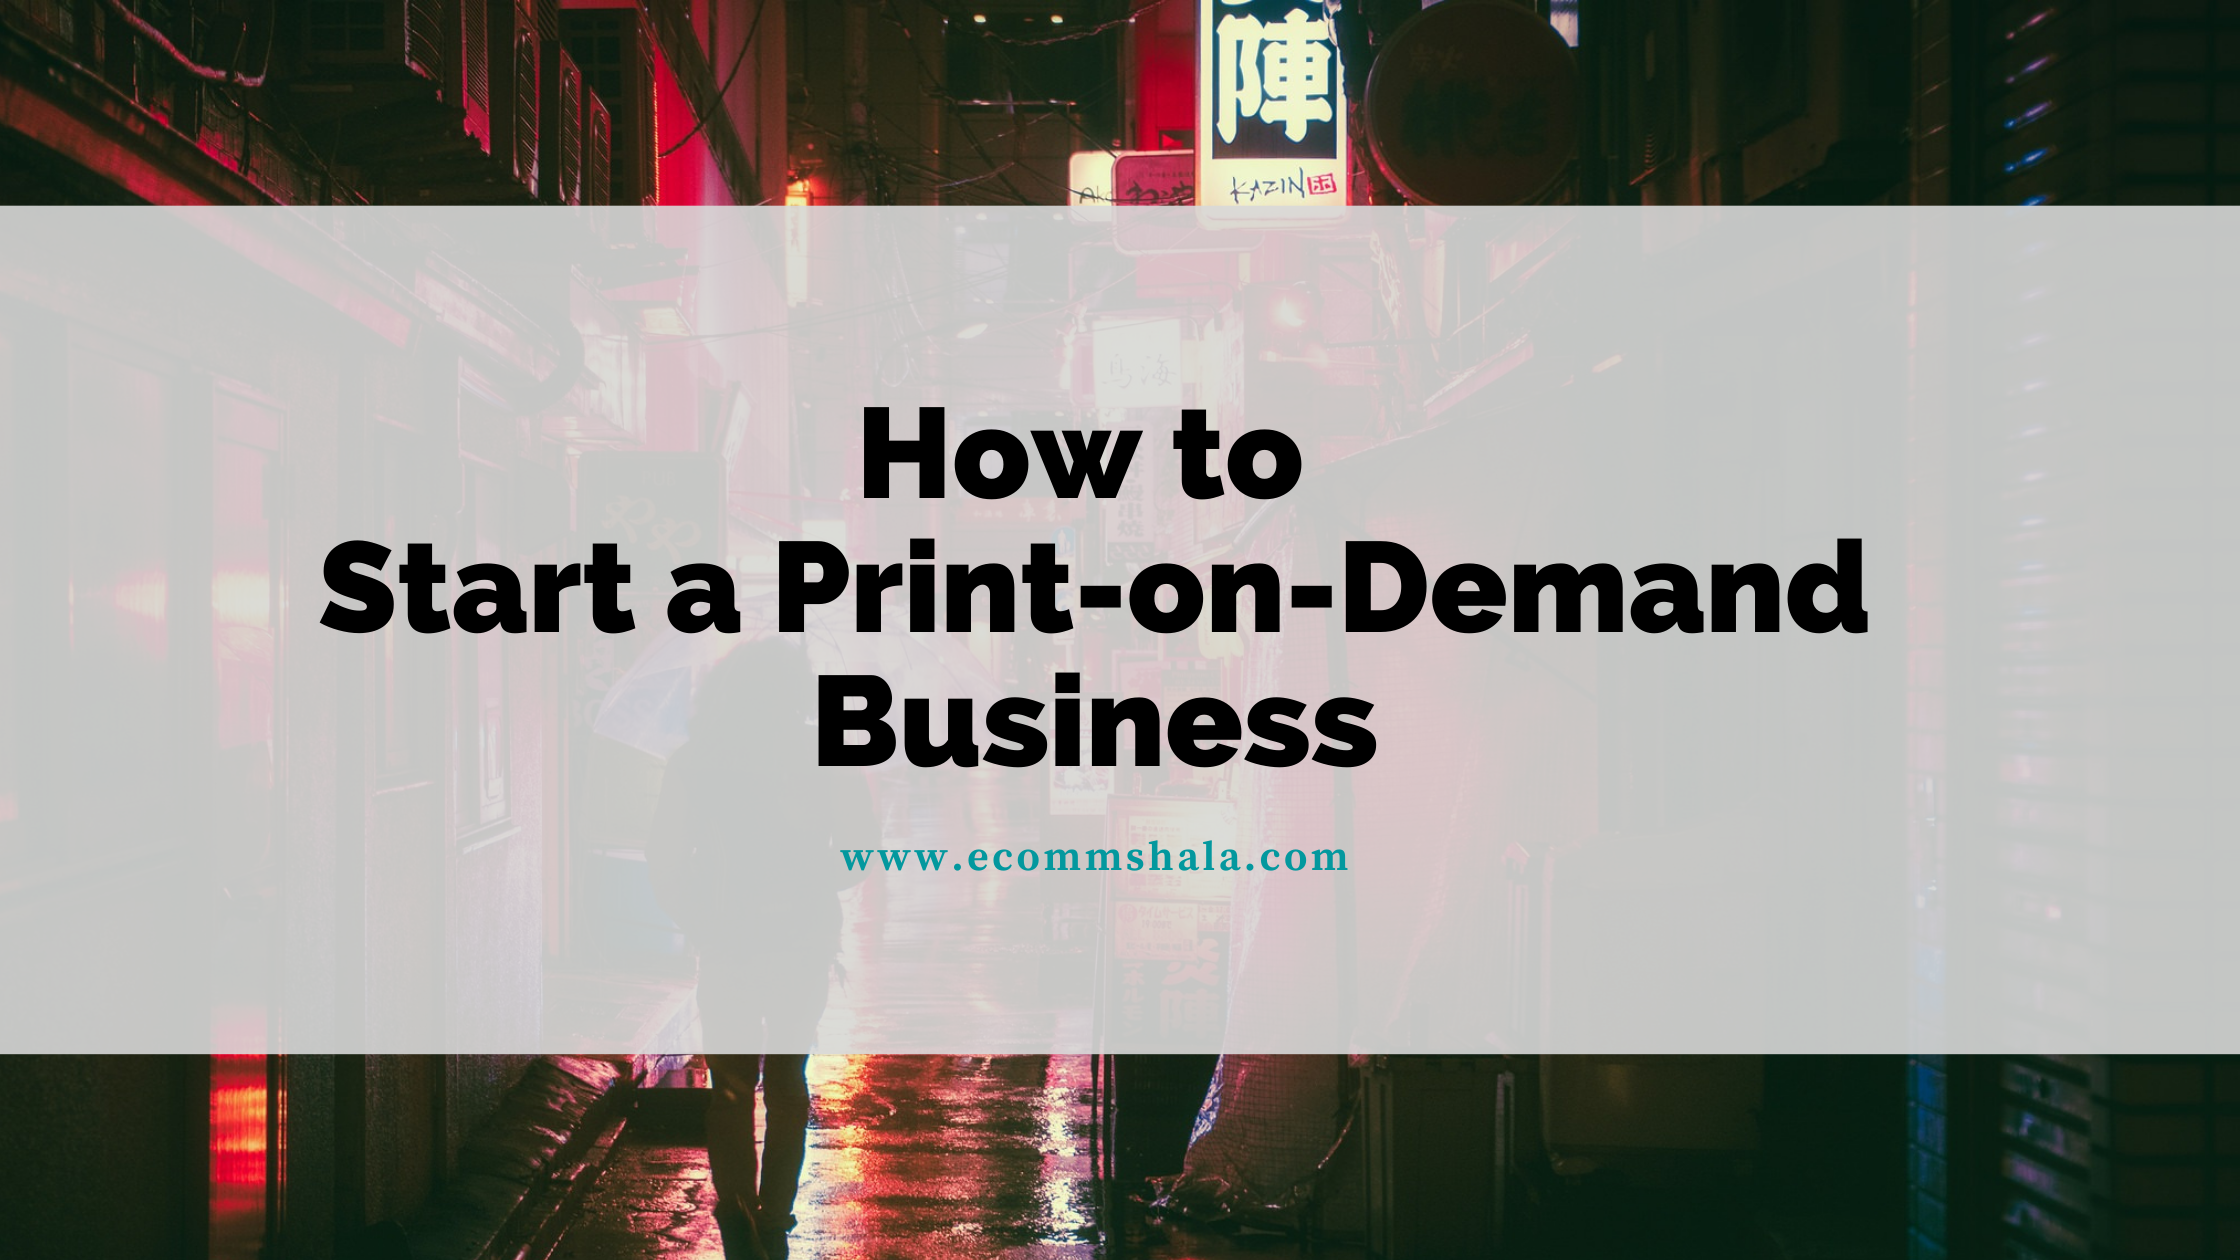 How to Start a Print-on-Demand Business